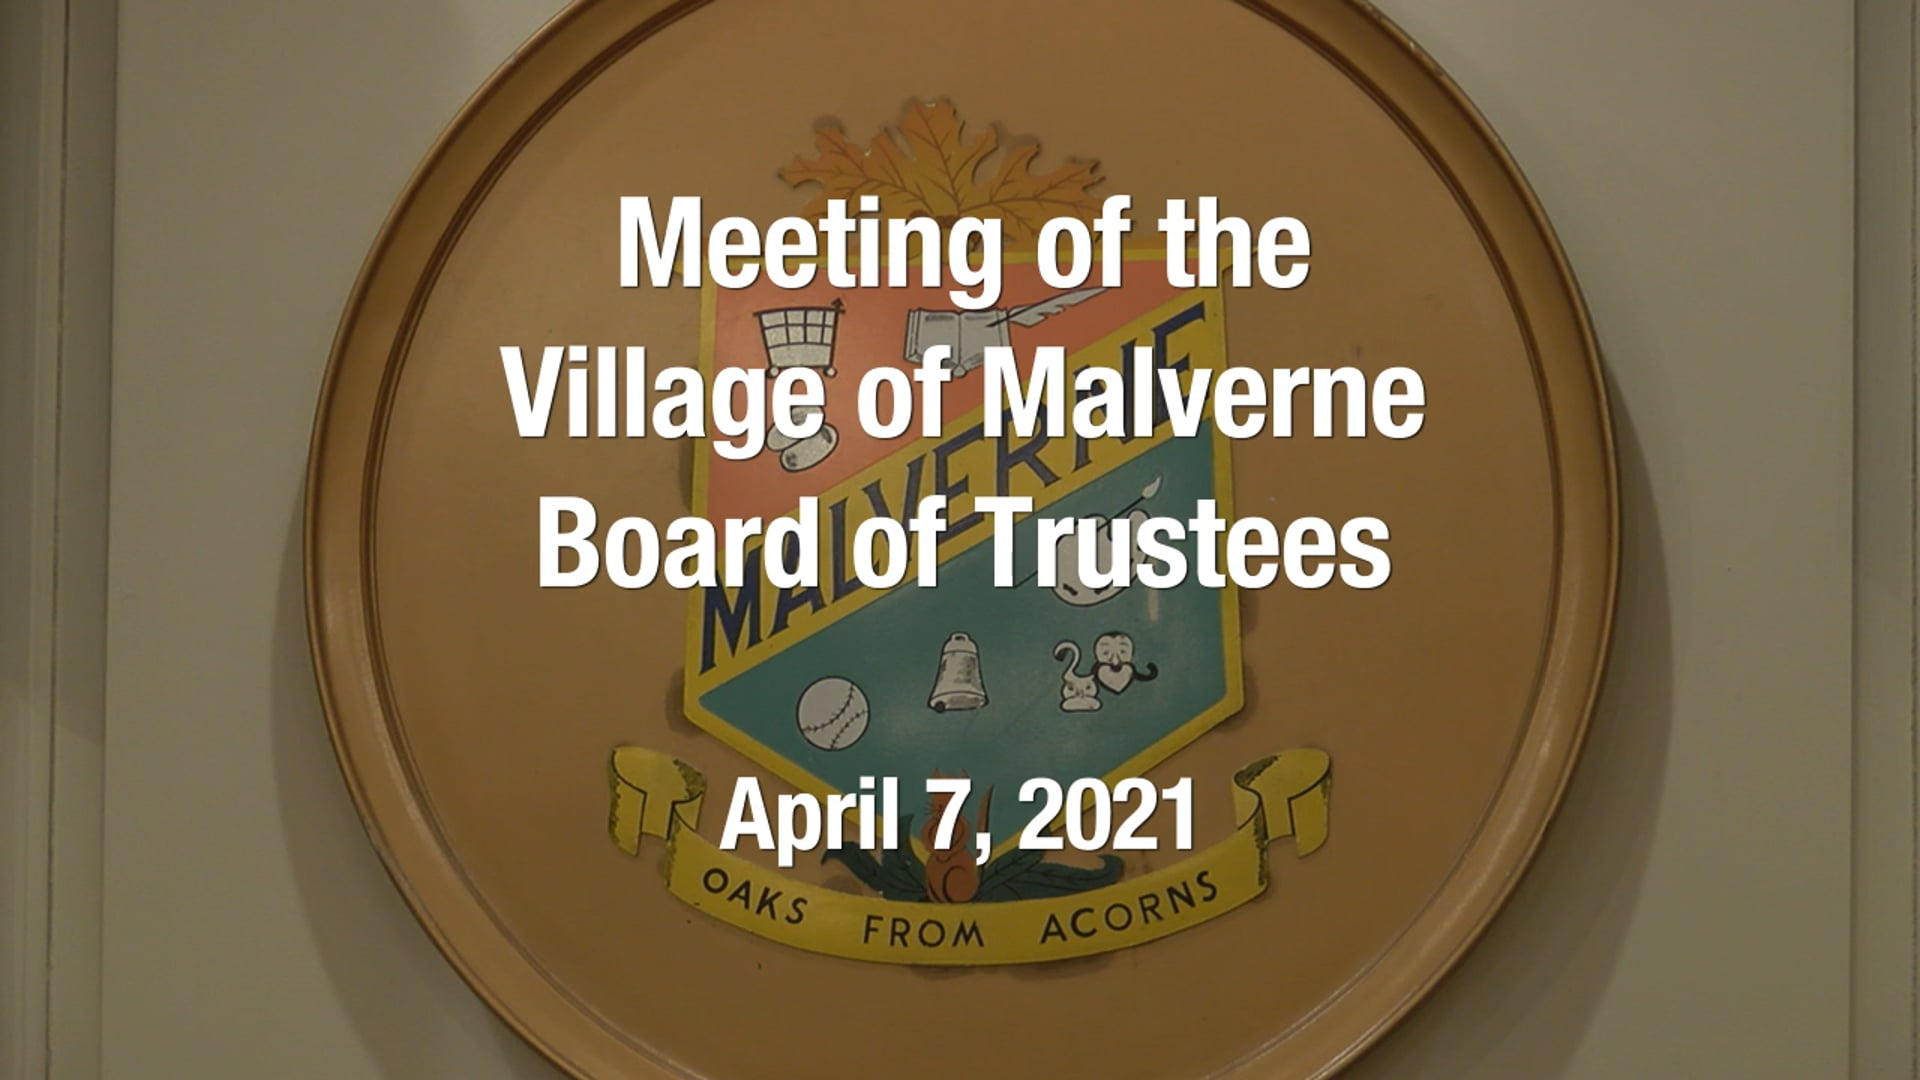 Village of Malverne Meeting of the Board of Trustees -  April 7, 2021